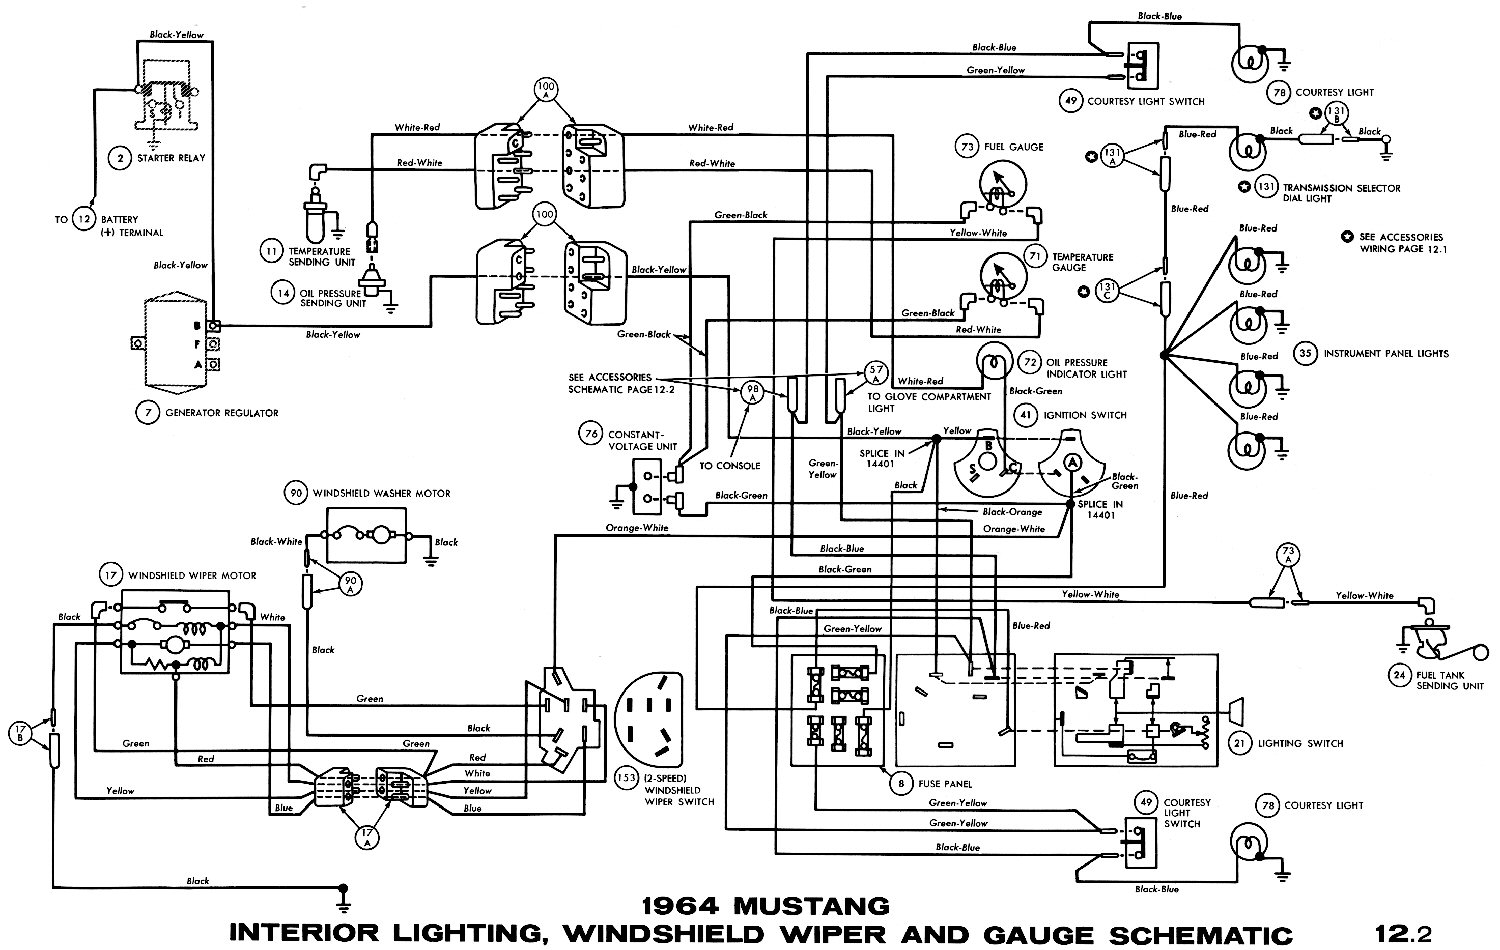 1964k 1964 mustang wiring diagrams average joe restoration ford mustang wiring diagram at cos-gaming.co